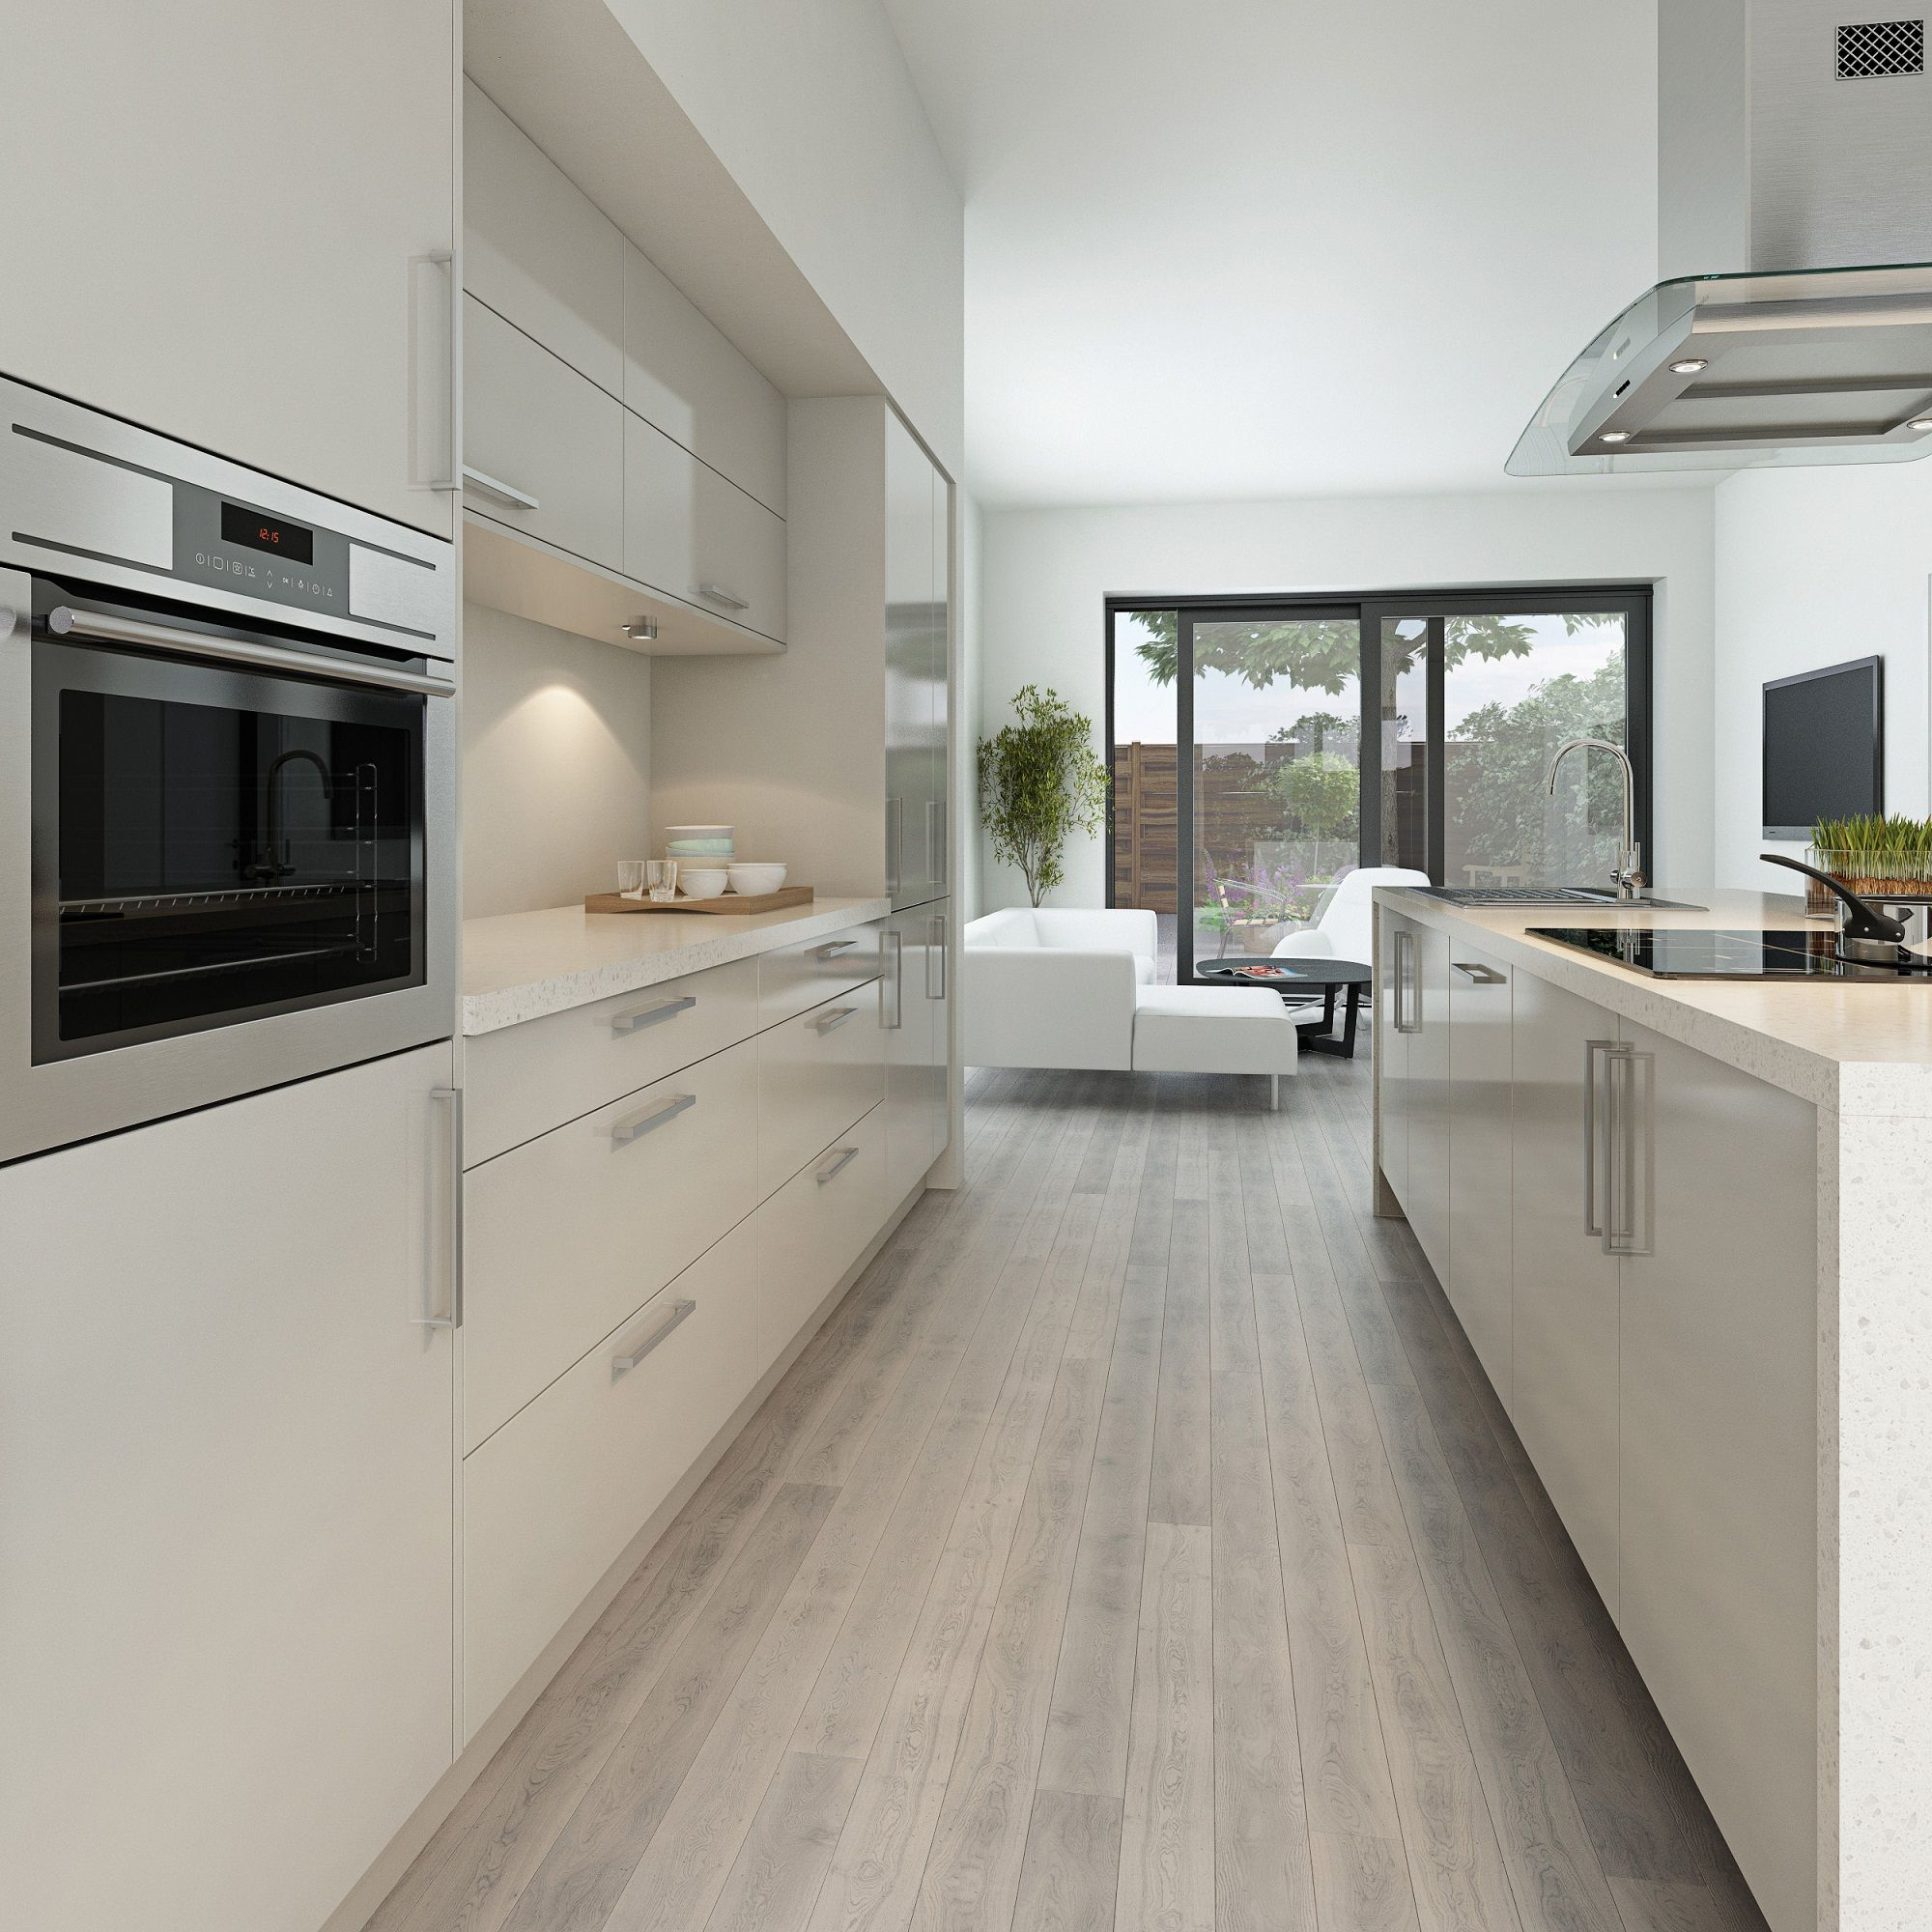 Maida Gloss Light Grey Is One Of Our Definitive Modern Kitchens And - Light grey kitchen doors